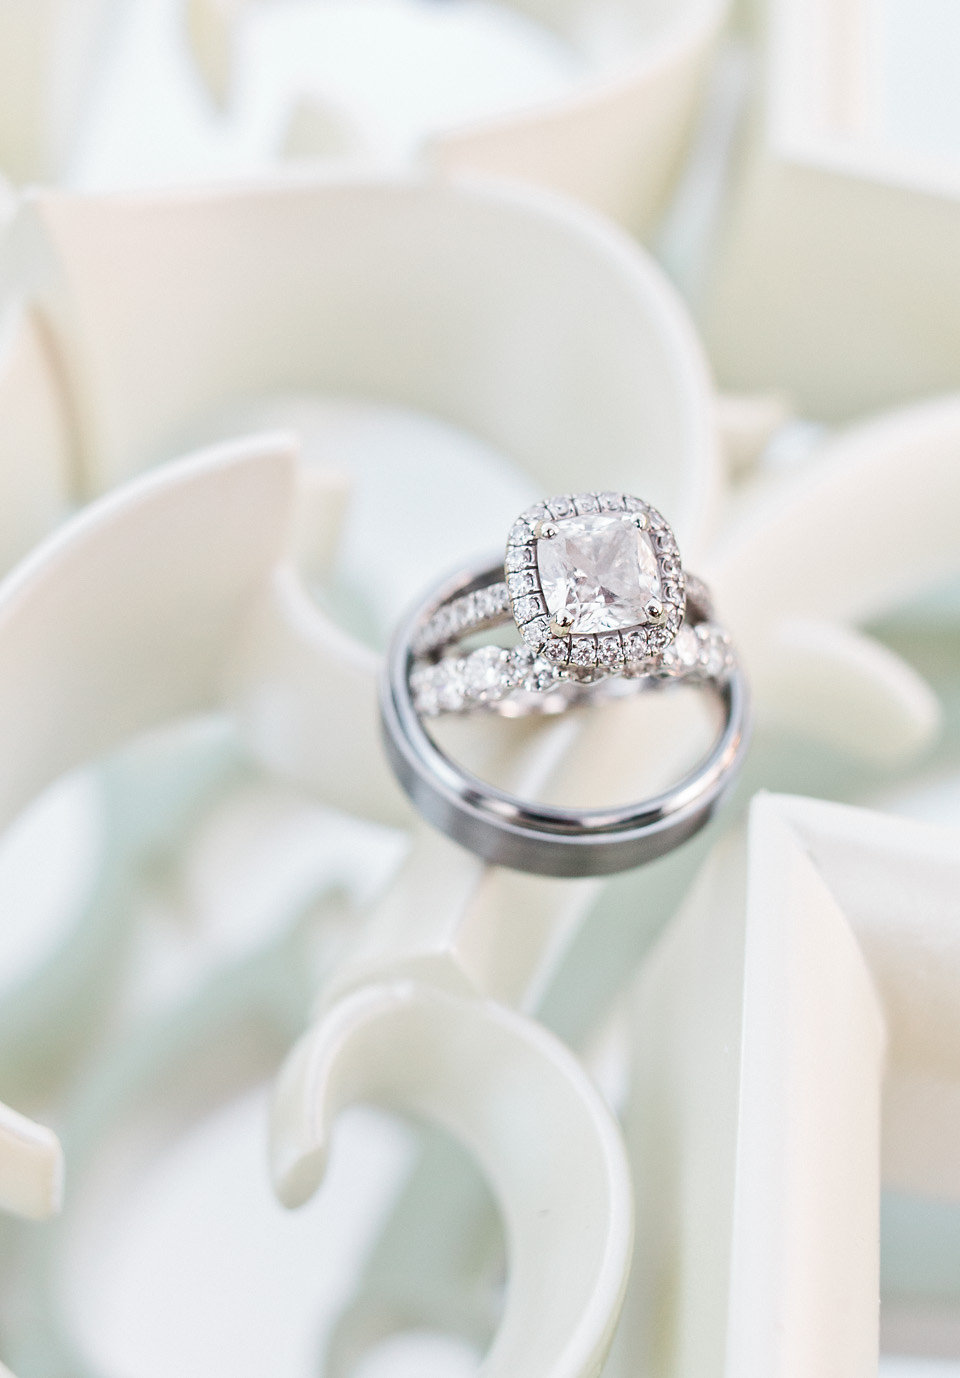 Diamond engagement ring and wedding bands